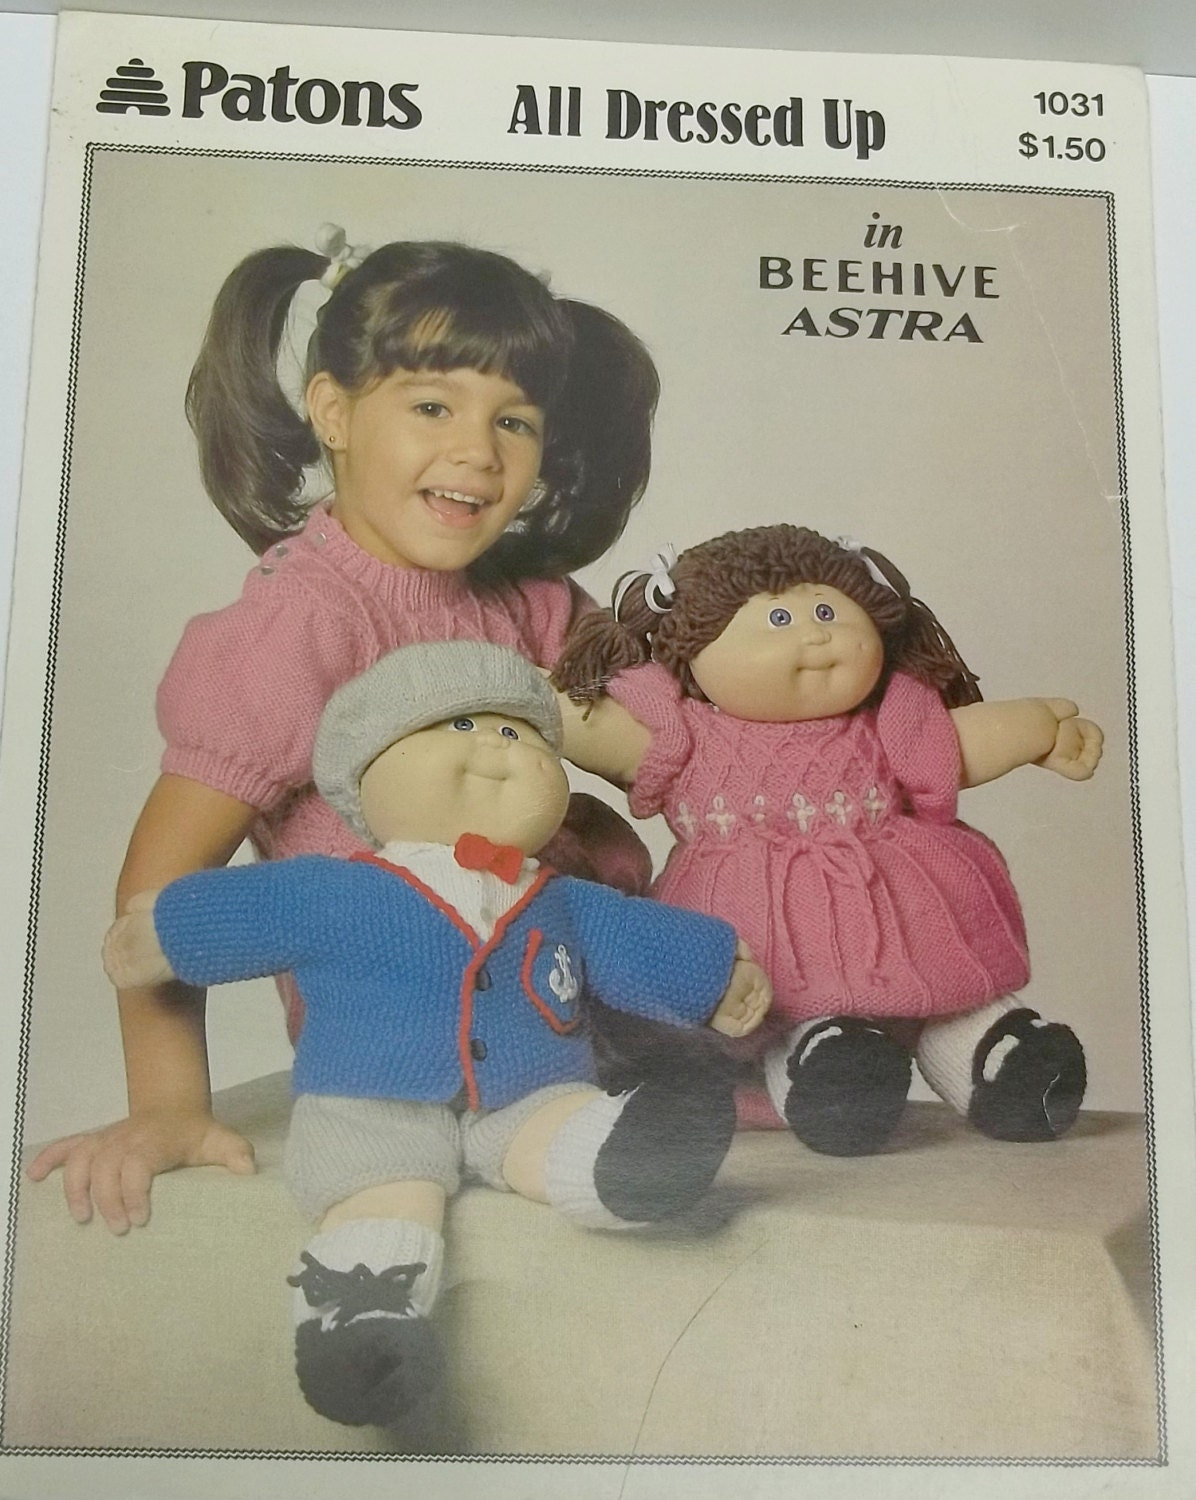 Knitting Patterns For Cabbage Patch Dolls : Cabbage Patch Dolls Knitting Patterns Free